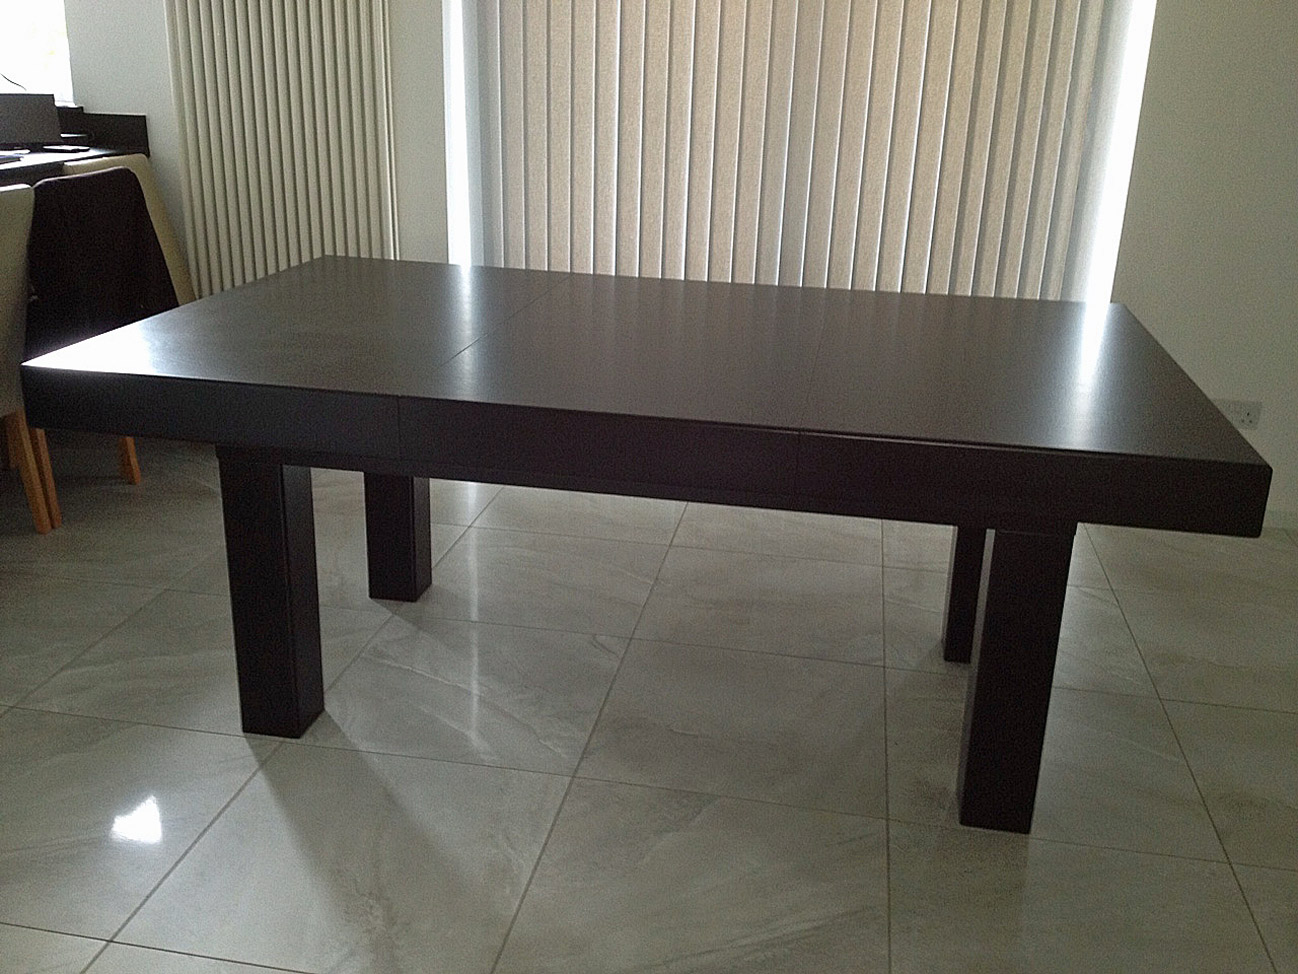 Simple Design Of The Pool Dining Table With Black Oak Wooden Color Ideas Added With White Tile Floor Ideas